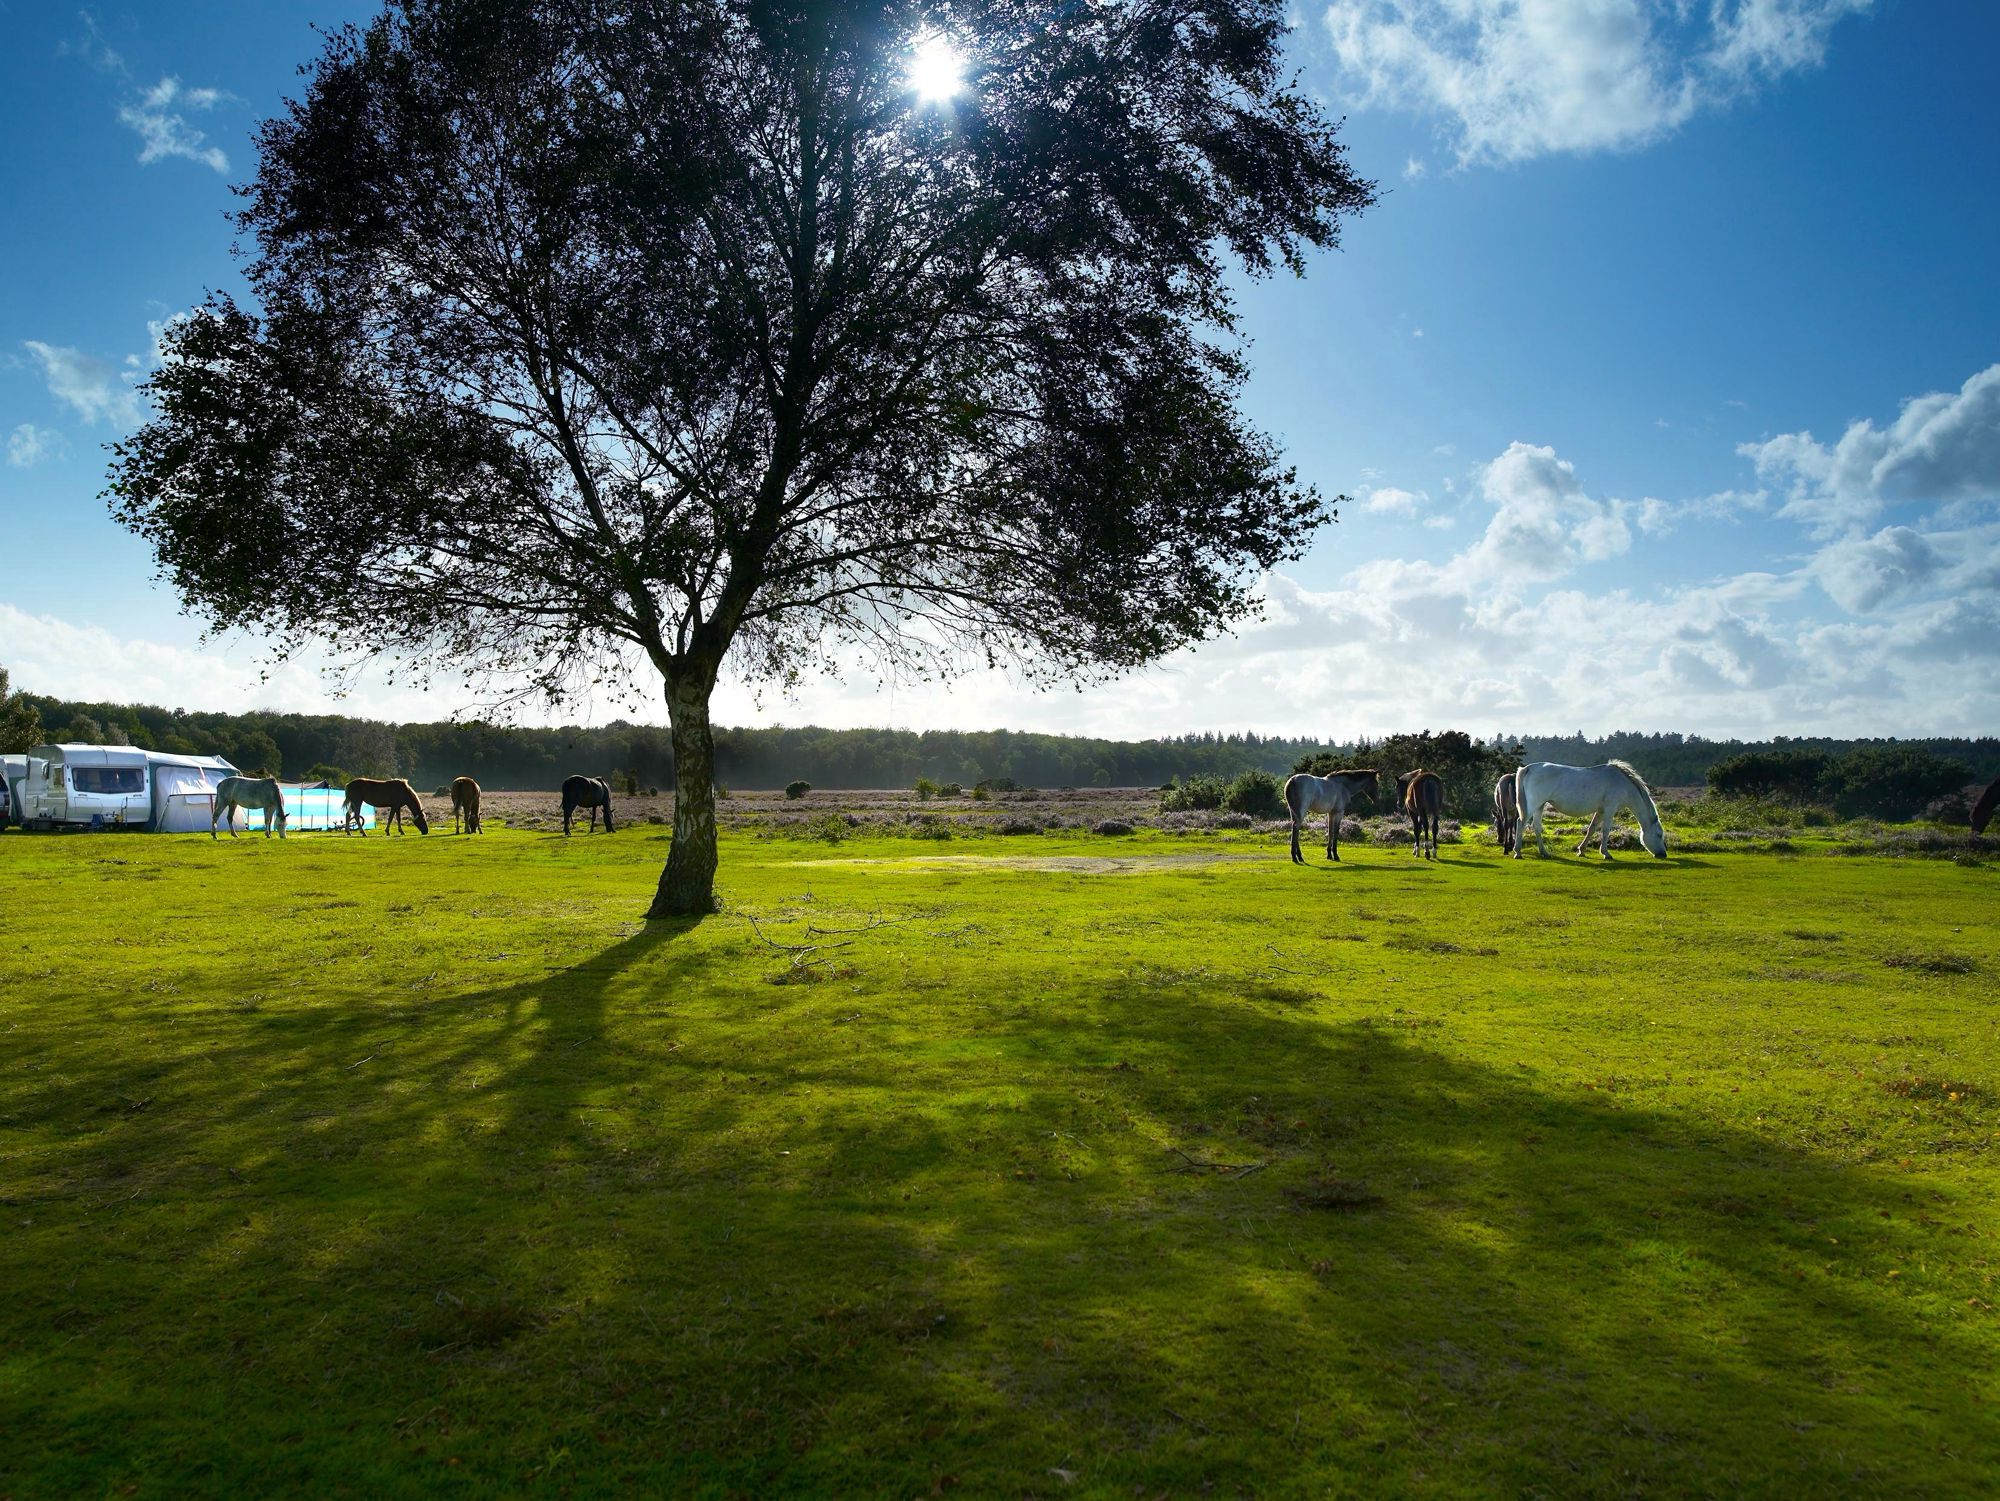 Camping in the Forest | Forestry Commission Campsite Locations